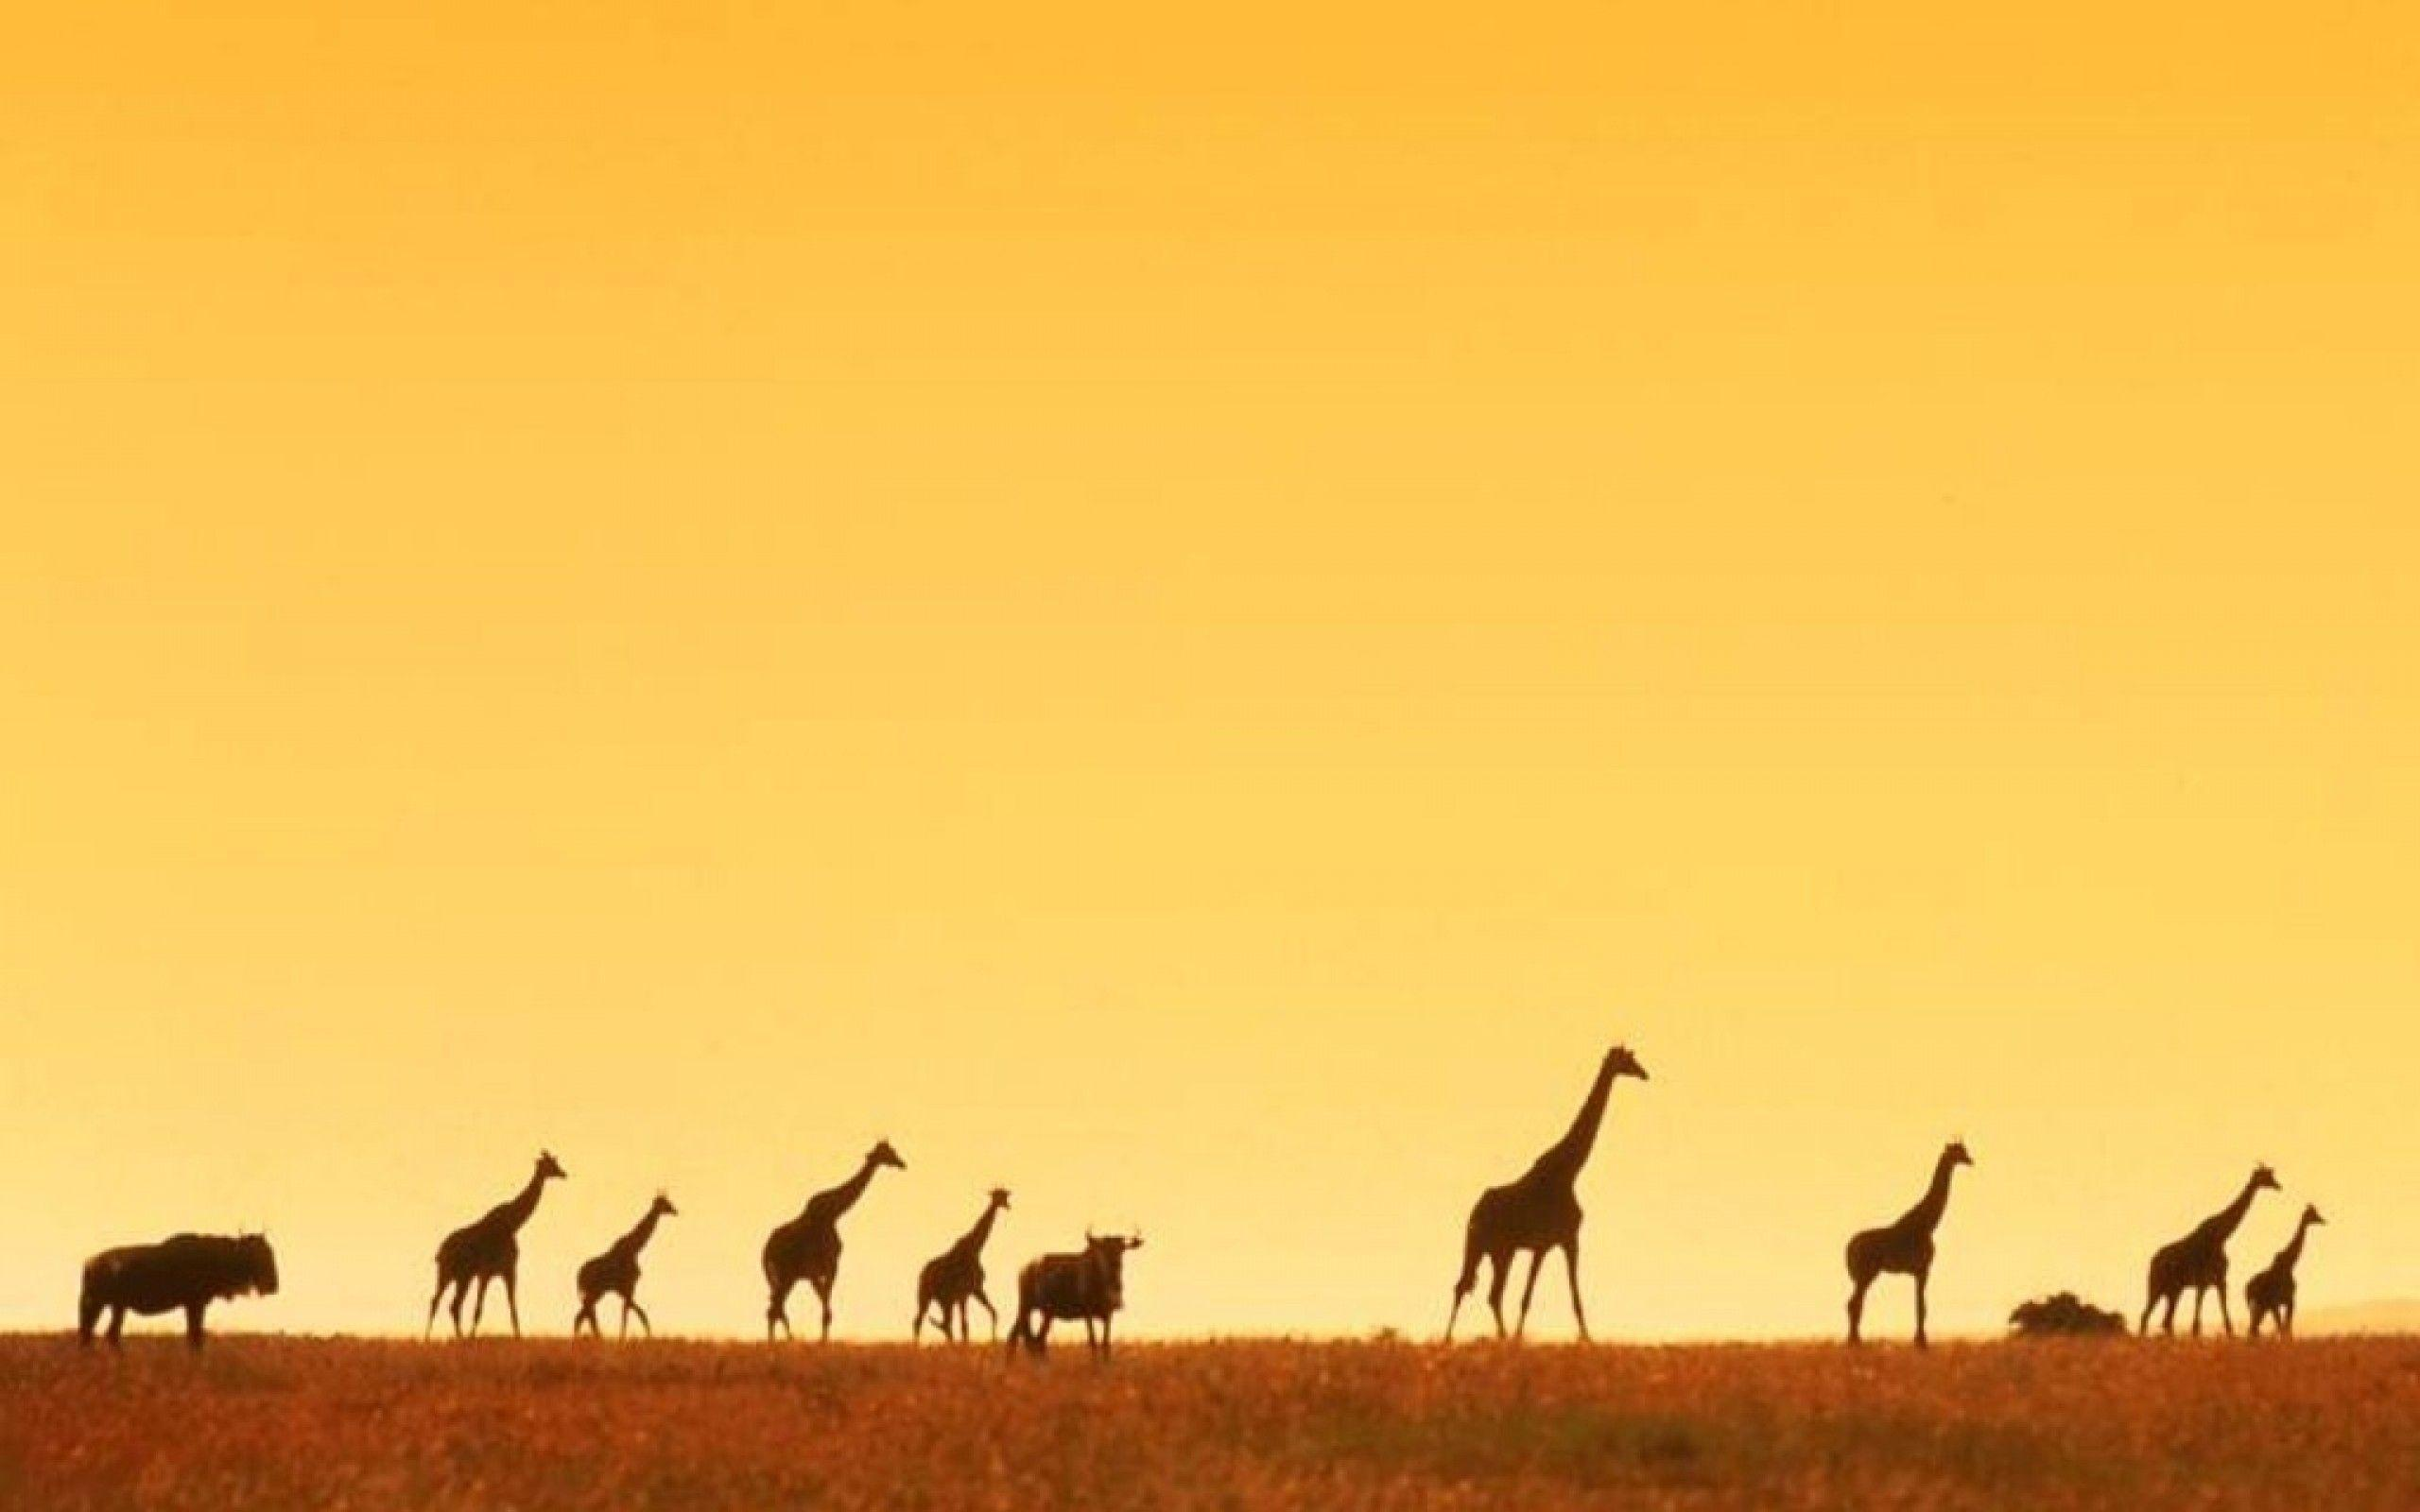 giraffe africa wallpaper - Animal Backgrounds